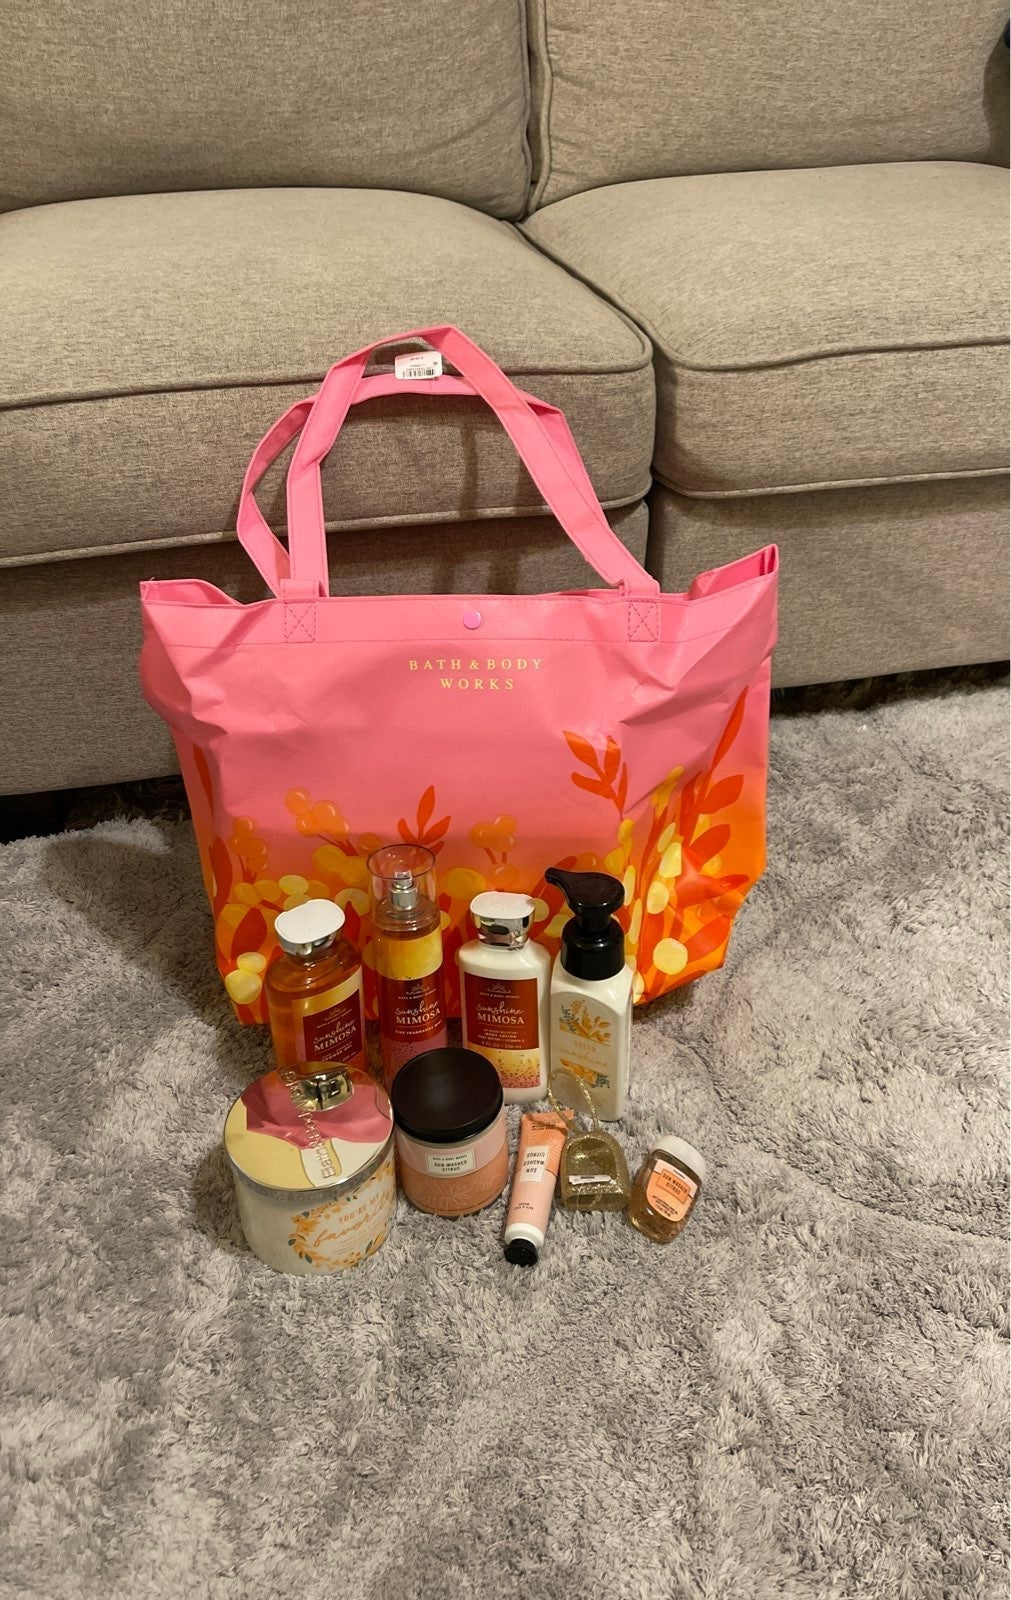 Bath Body Works Mother's Day Tote Bundle